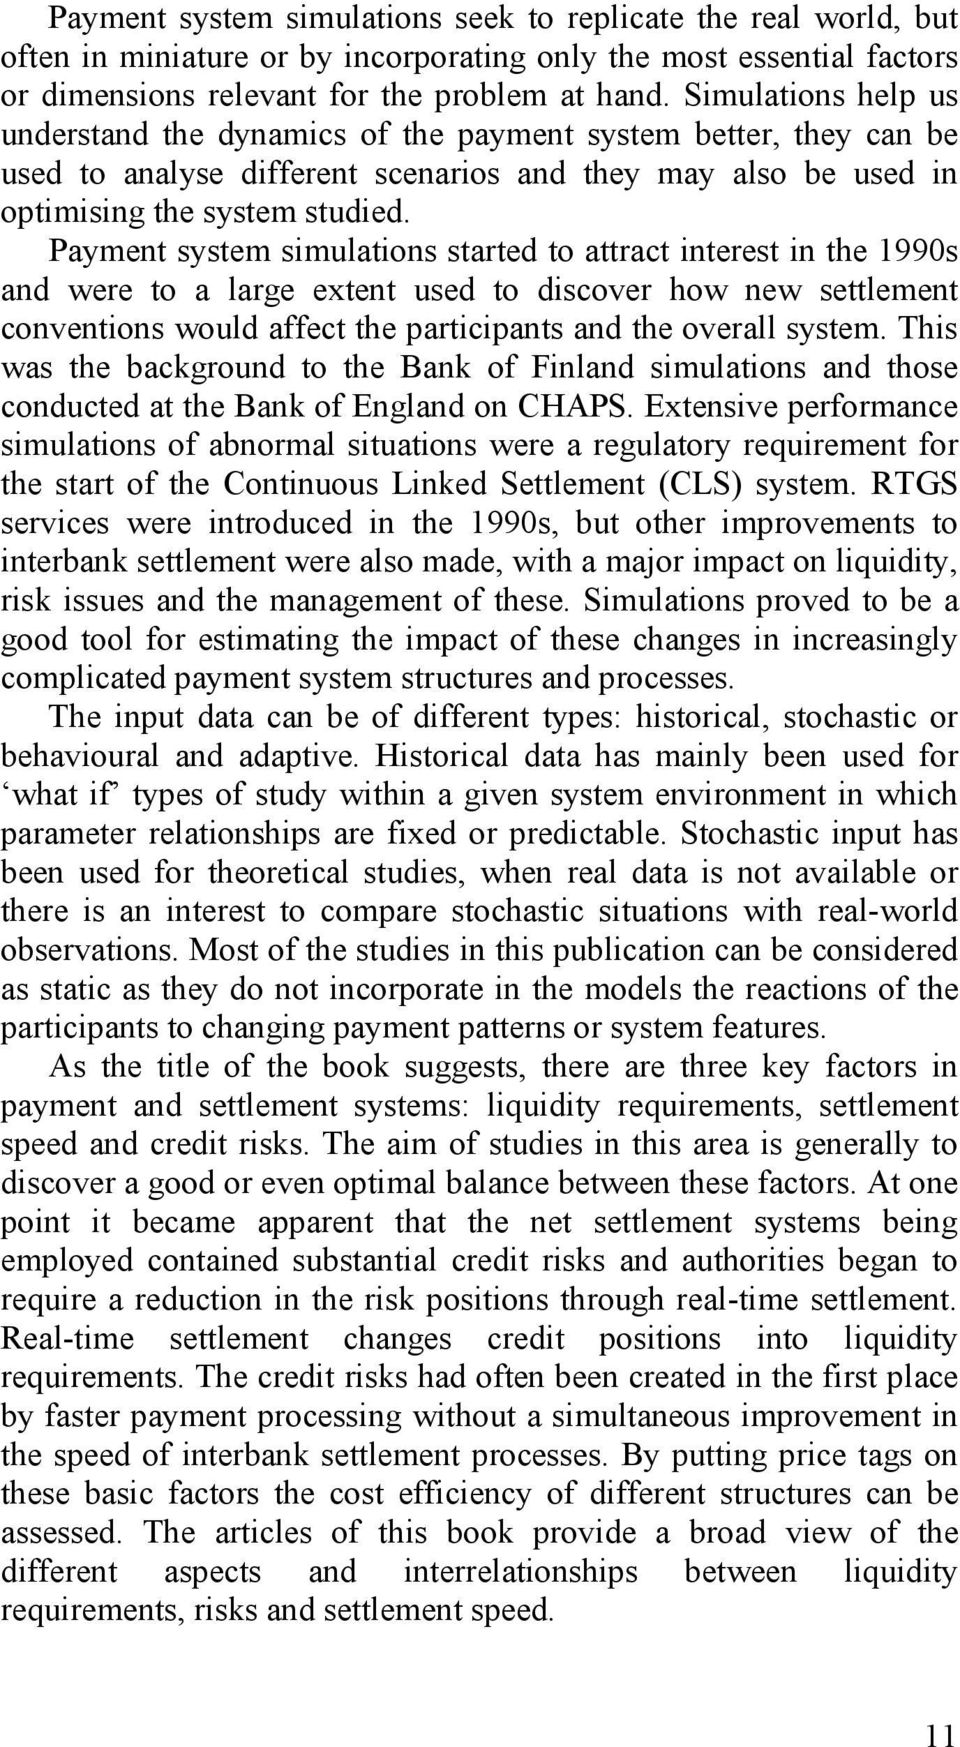 Payment system simulations started to attract interest in the 1990s and were to a large extent used to discover how new settlement conventions would affect the participants and the overall system.